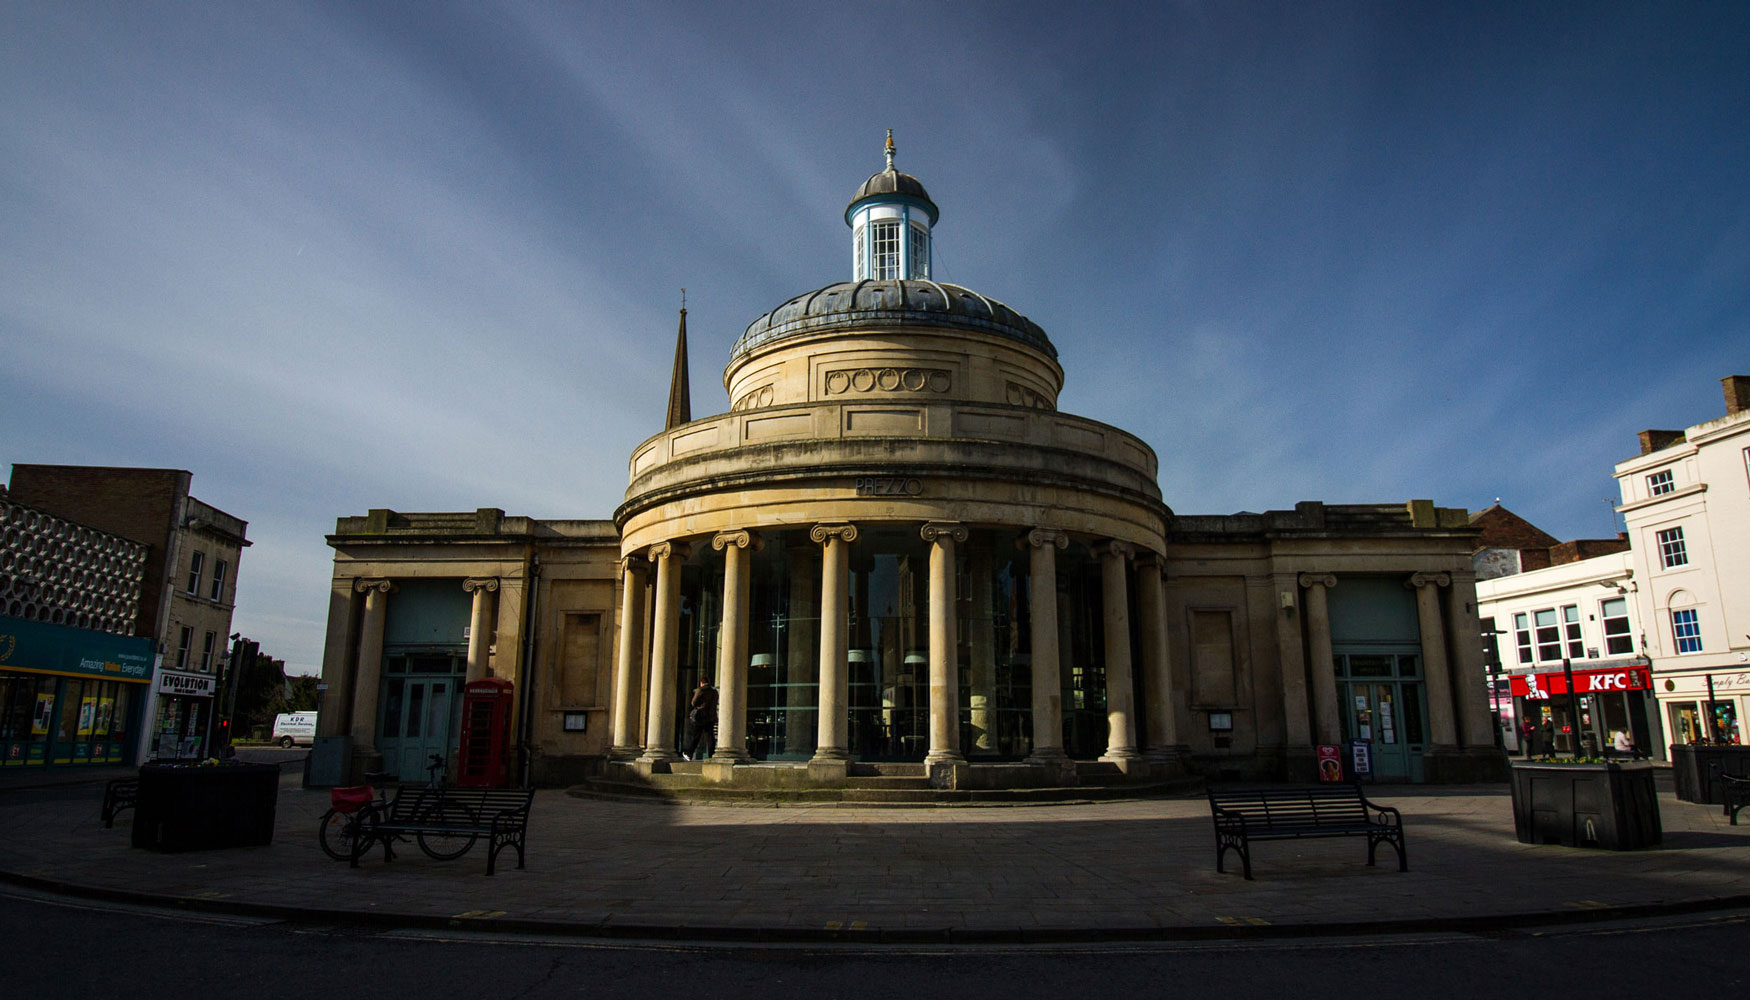 Bridgwater corn exchange